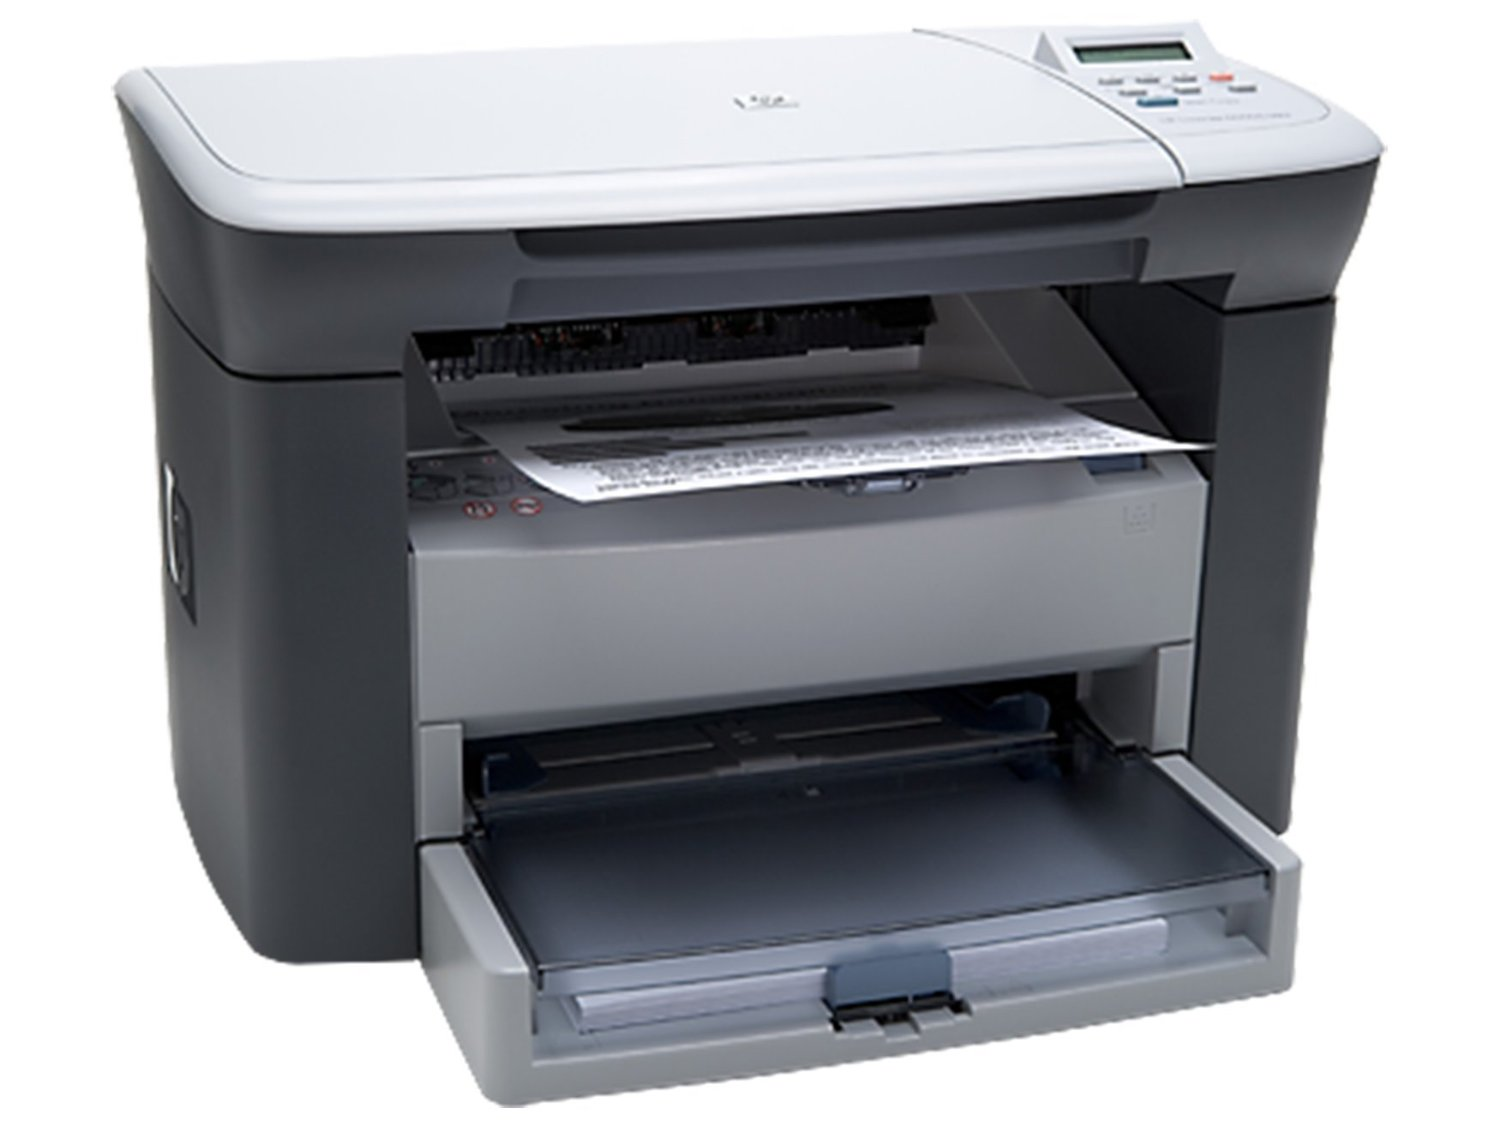 HP Printers - Finding Drivers, Apps, and Updates for HP ...